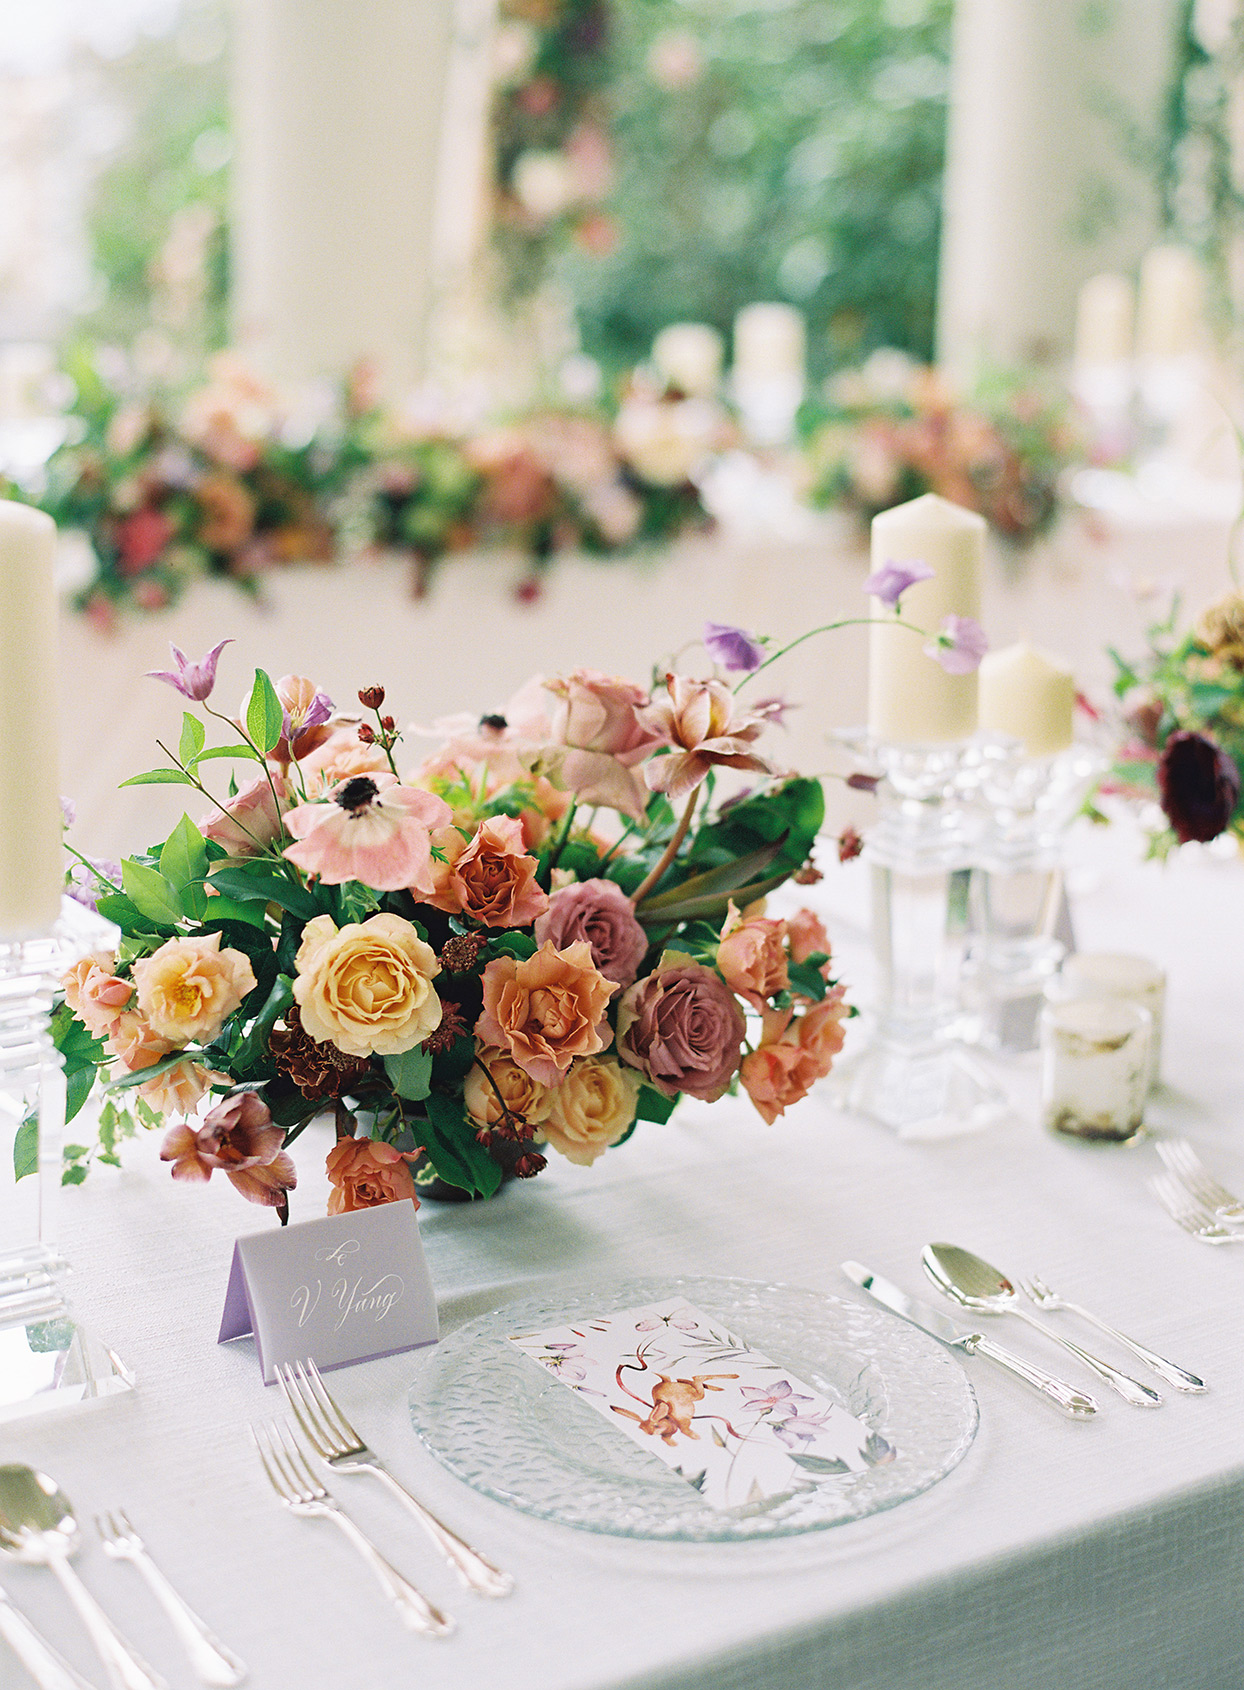 jackie ben wedding floral centerpiece and place setting